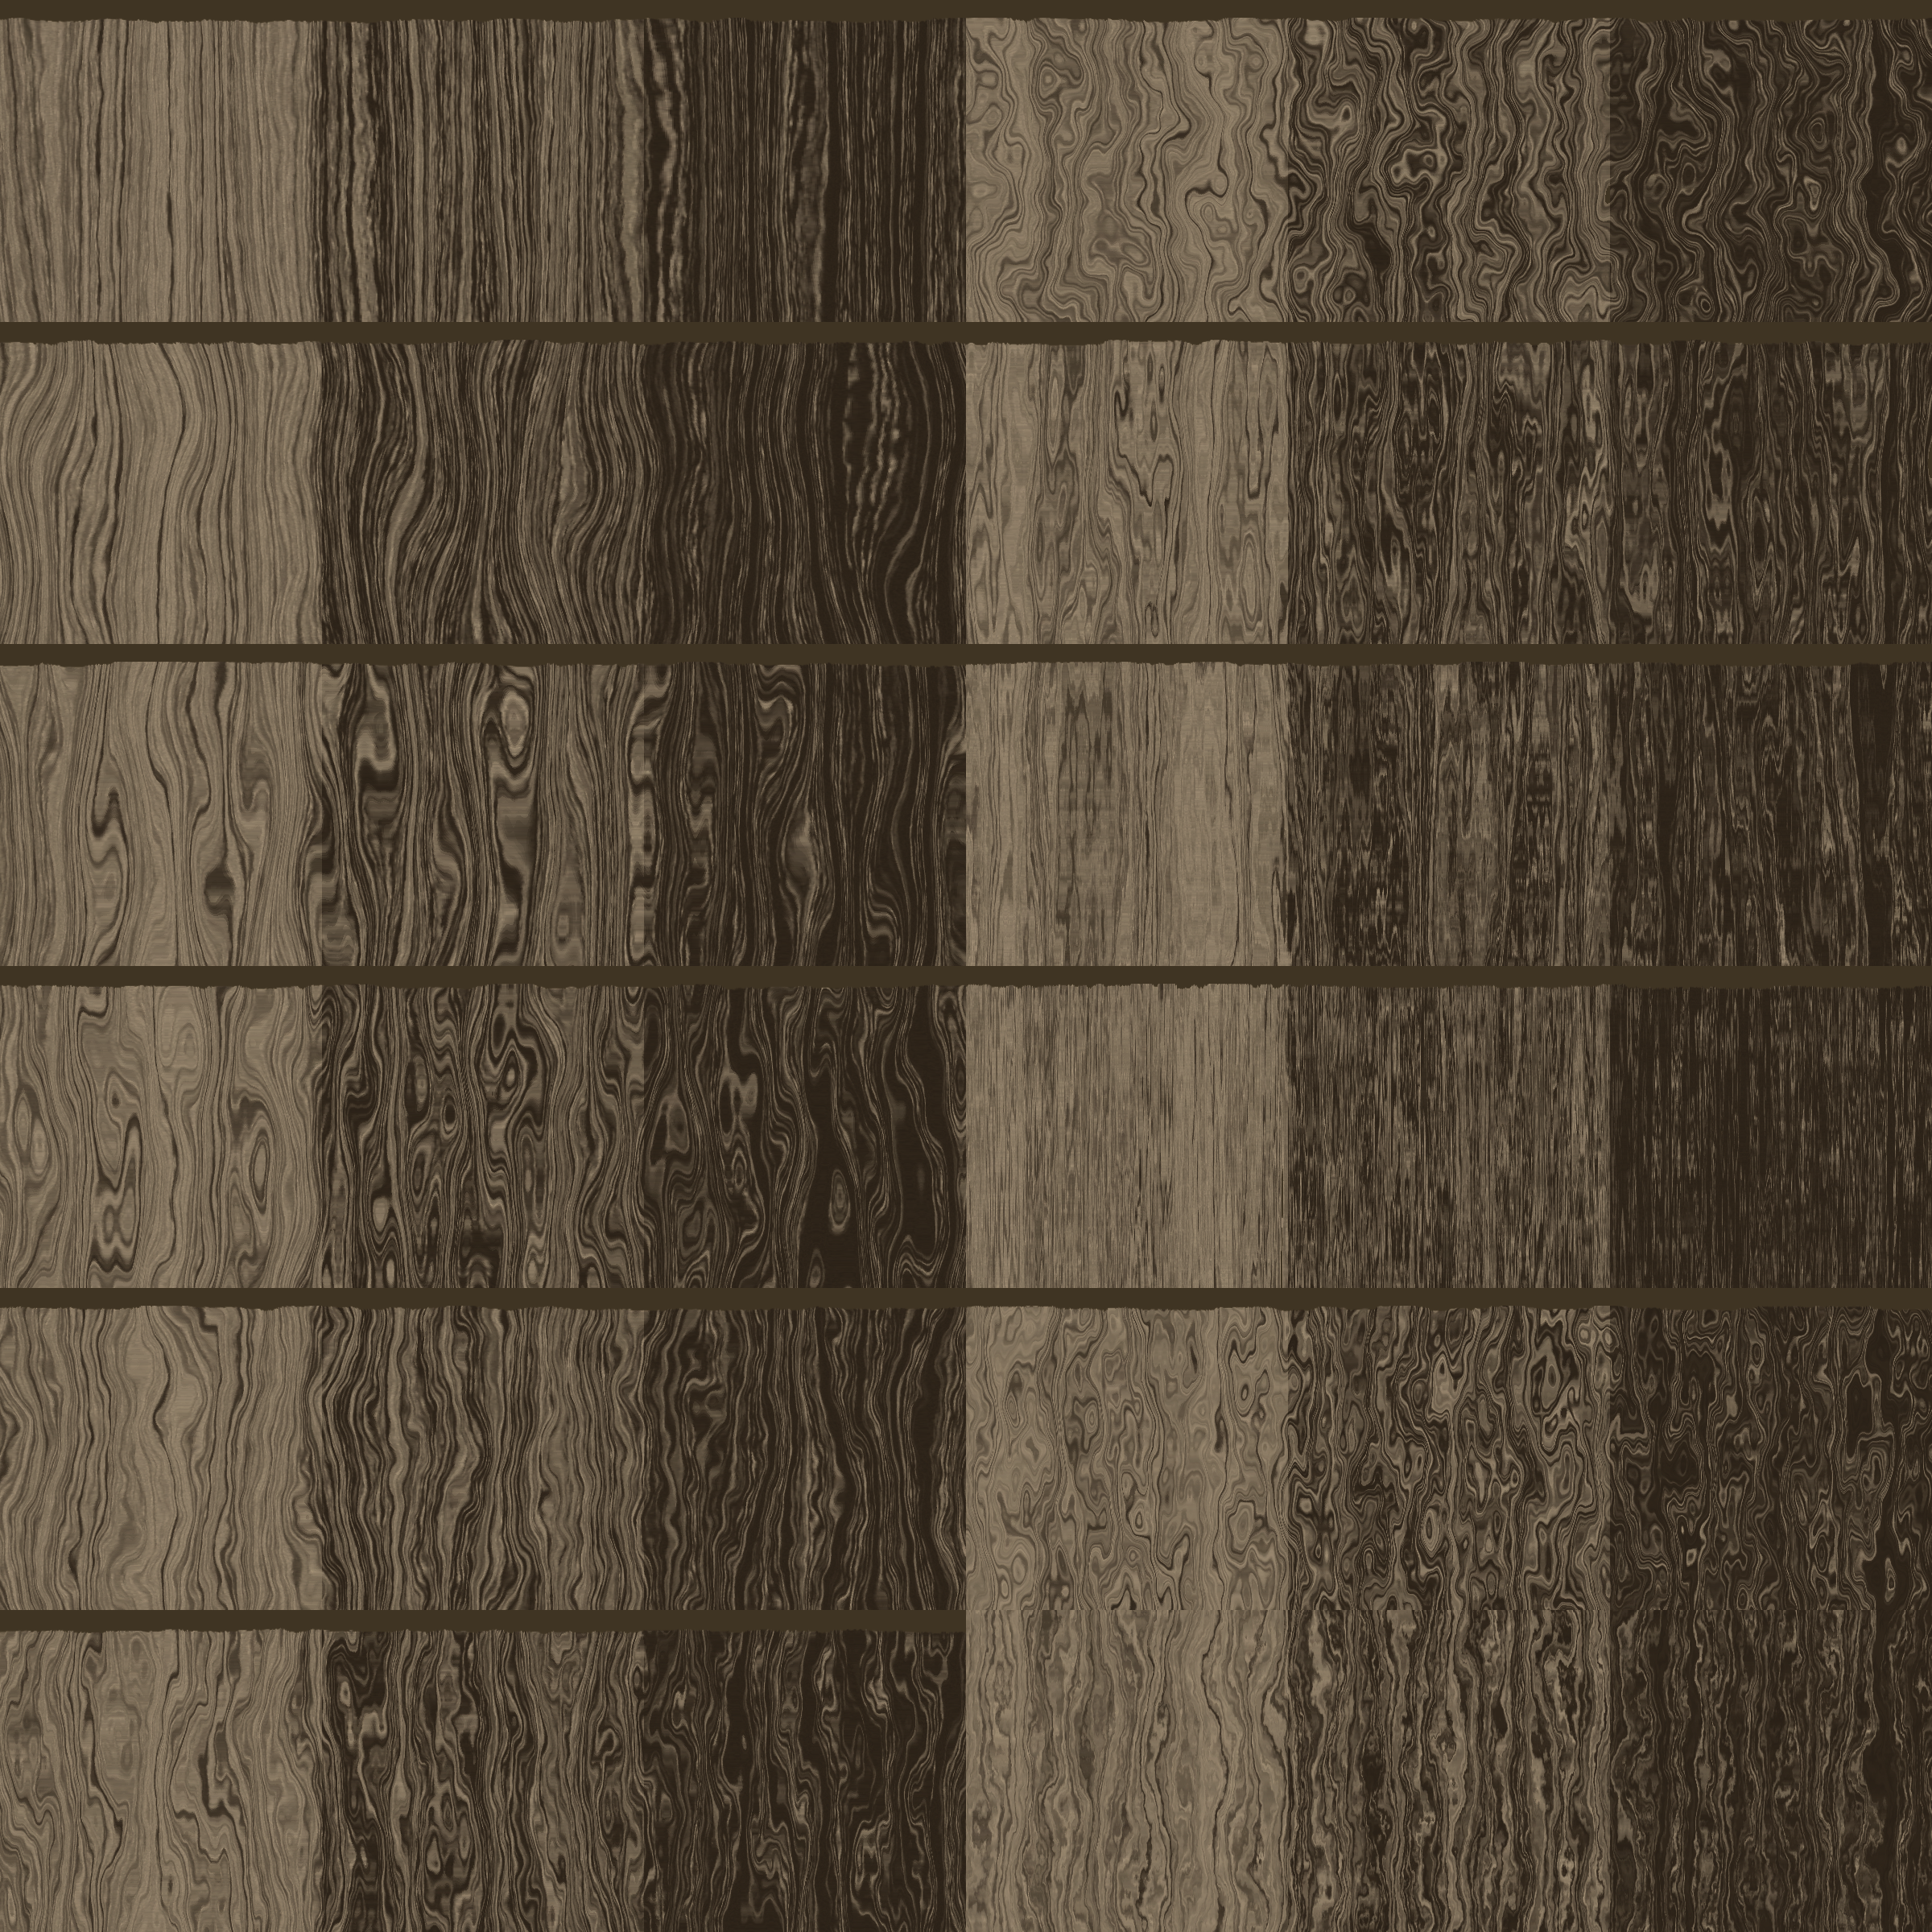 wood grain filter pack 5 by Lazur URH